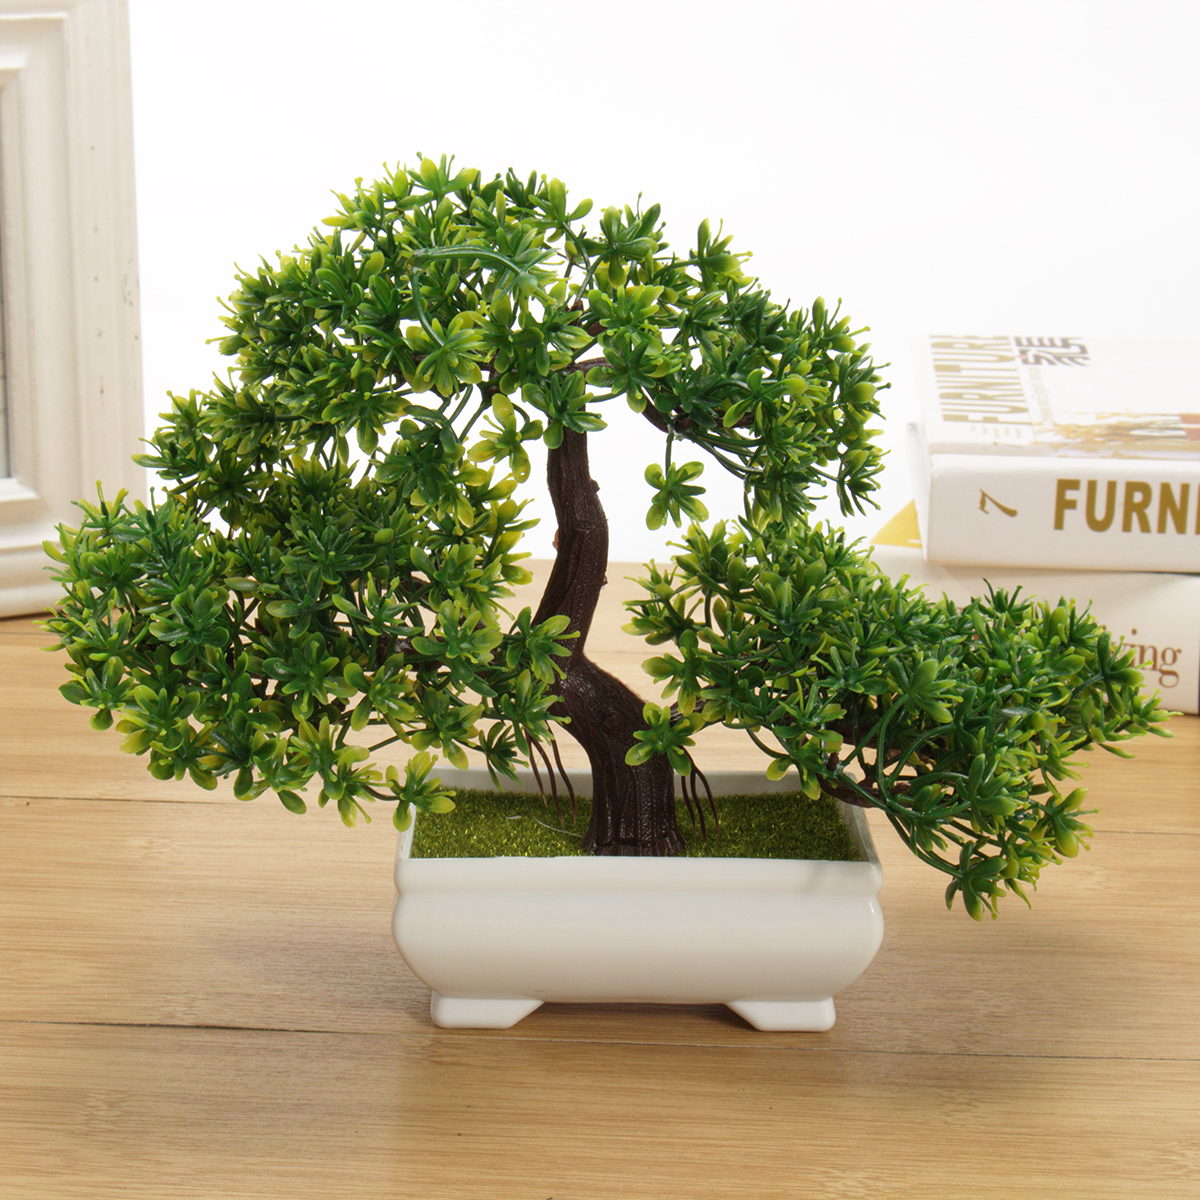 Fake Artificial Green Plant Bonsai Potted Simulation Pine Tree Home Office Decor 6212802113107 Ebay